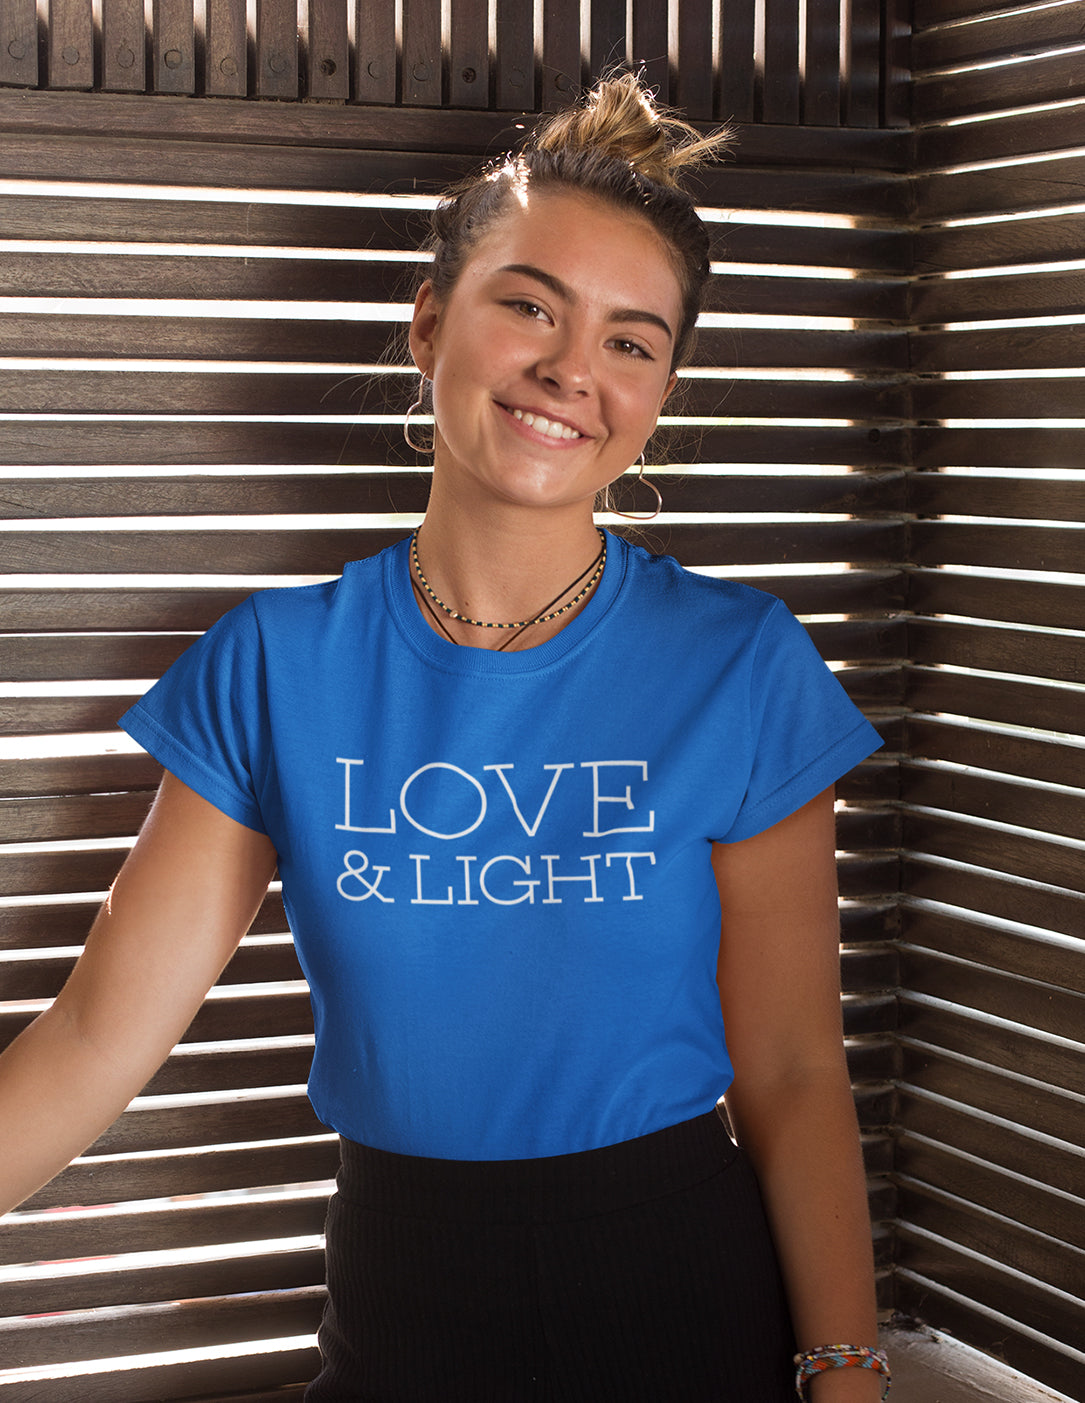 Love & Light - Women's T-Shirt - Sapphire Blue